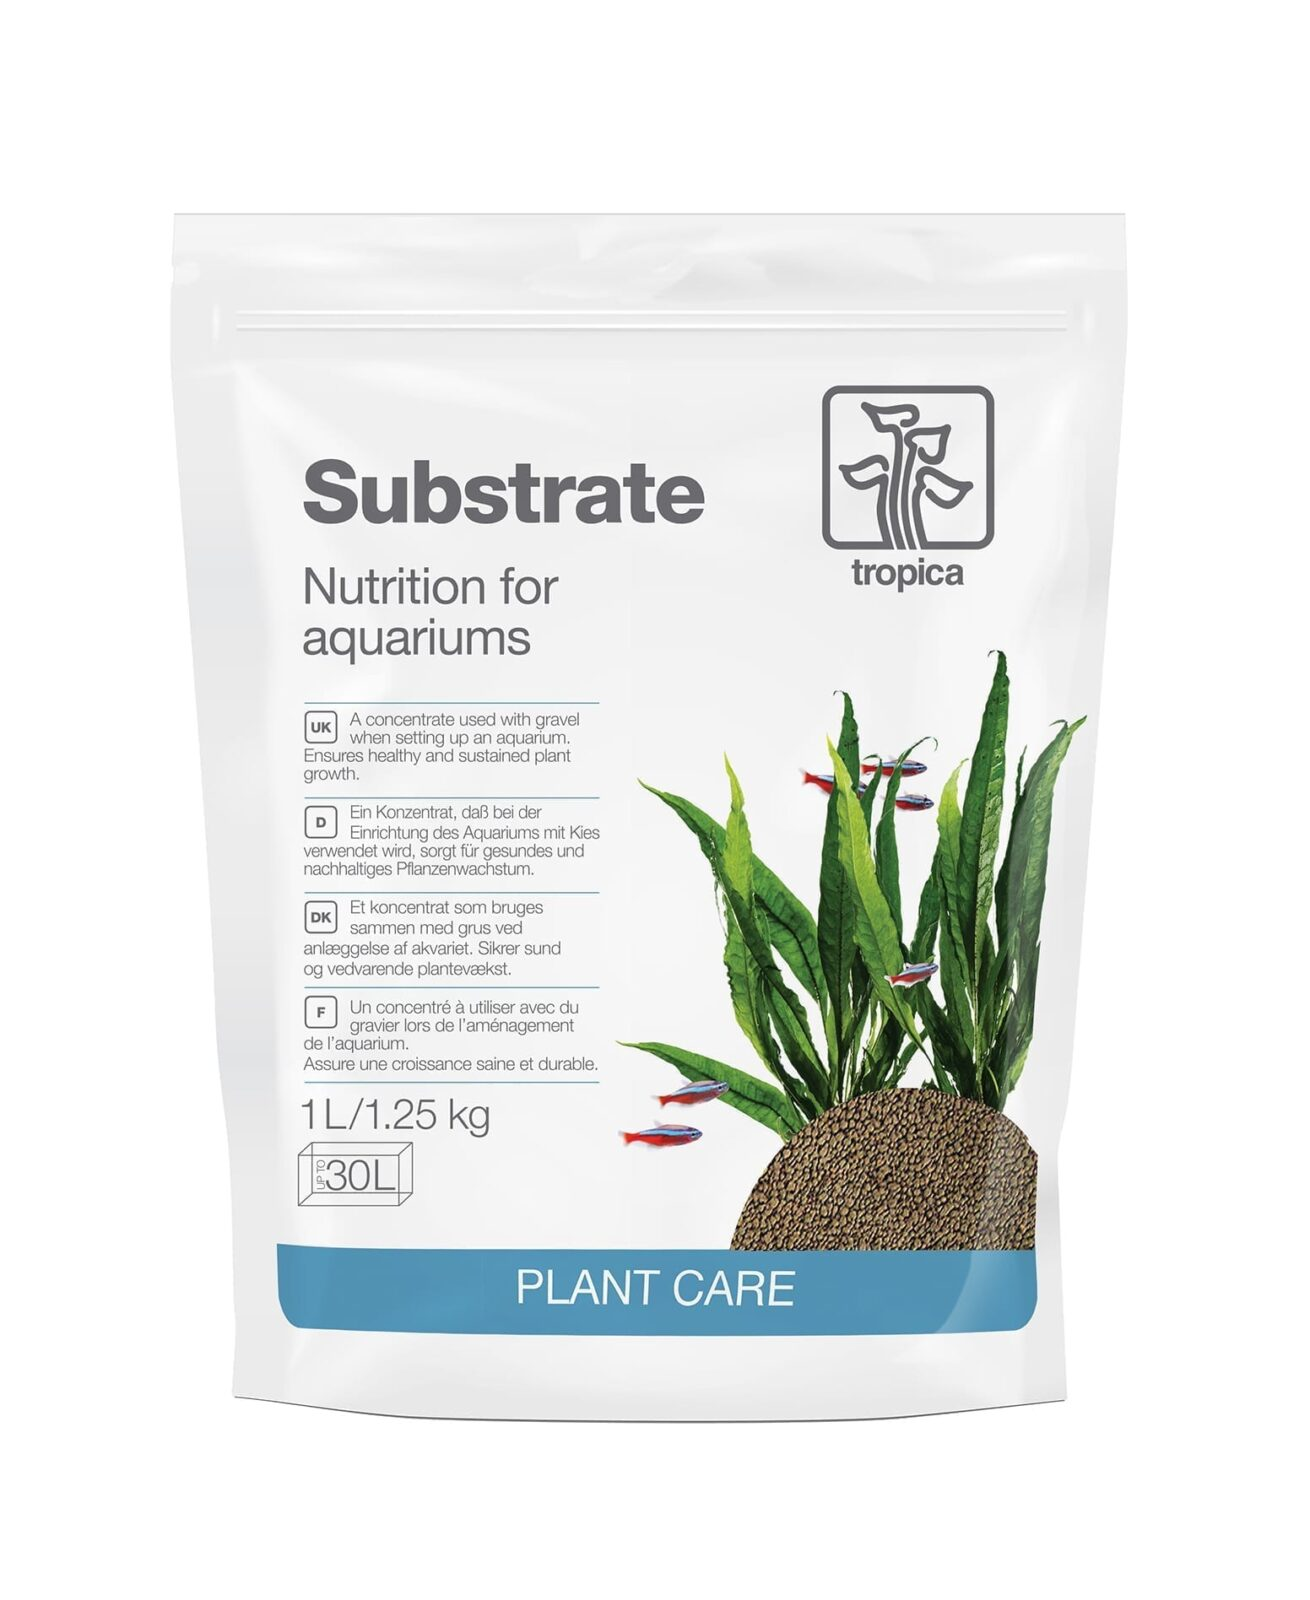 TropicaLSubstrate